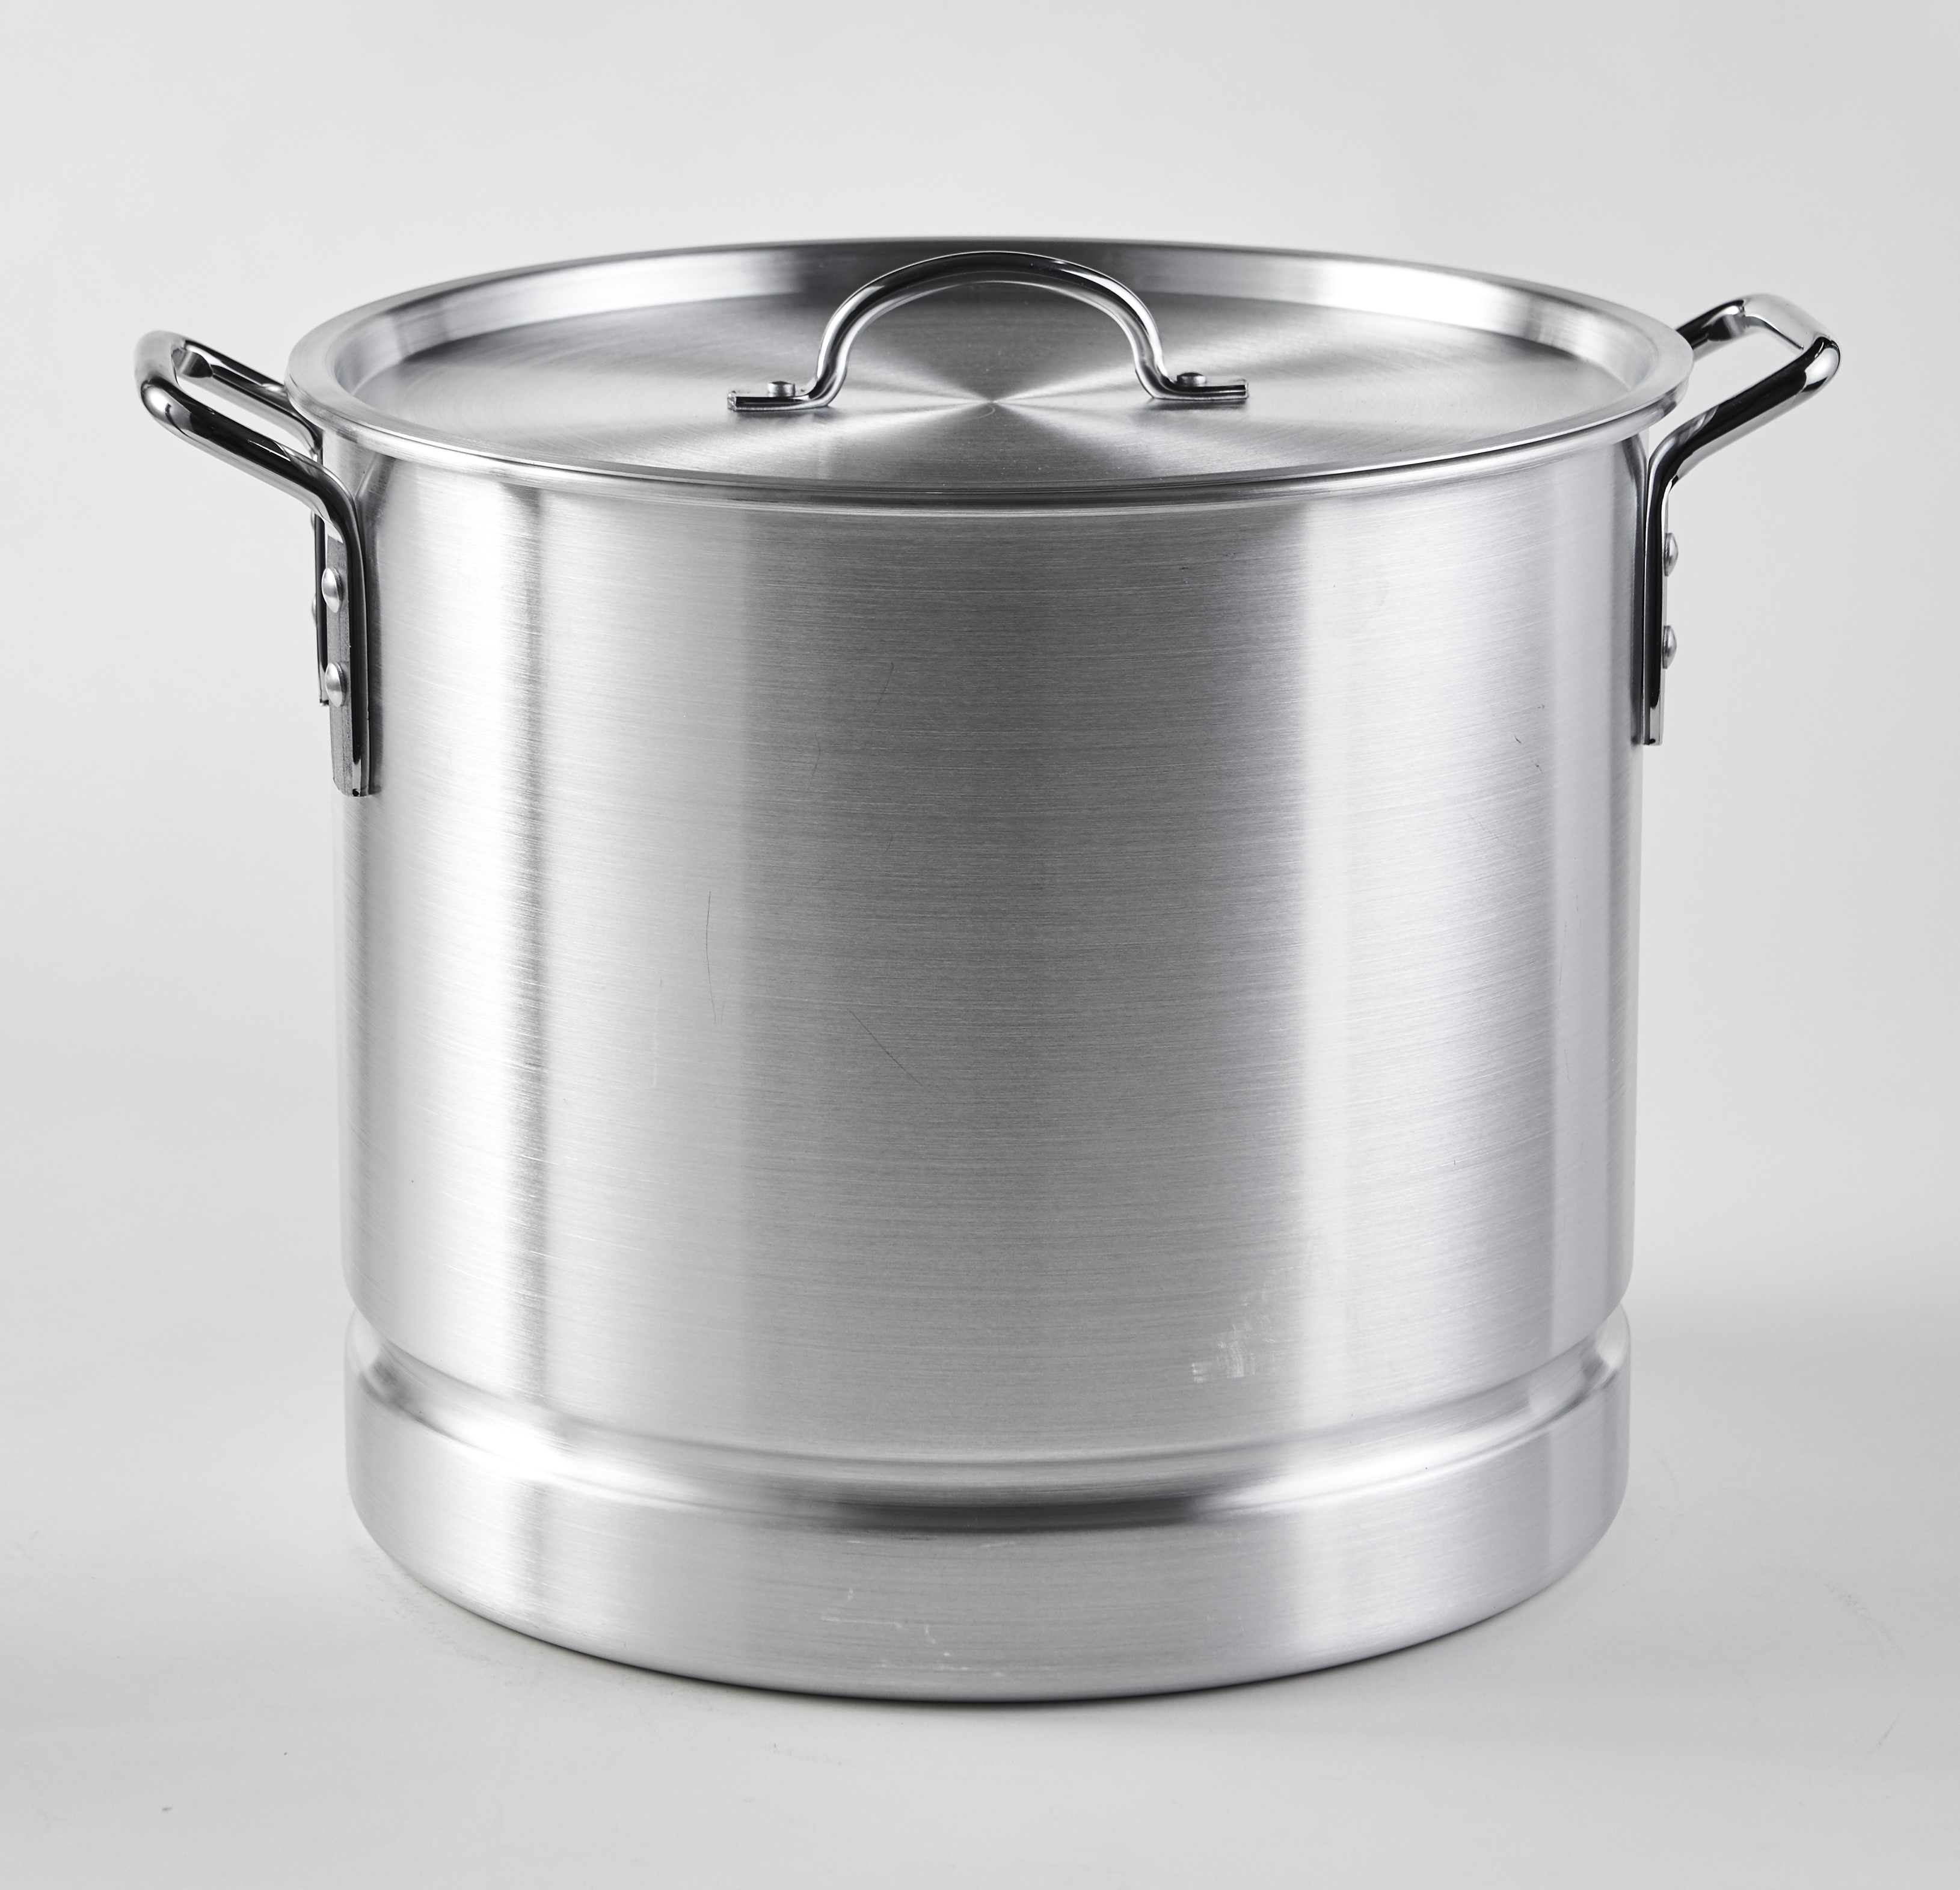 IMUSA USA MEXICANA-34 Aluminum Tamale and Steamer Pot 32-Quart, Silver